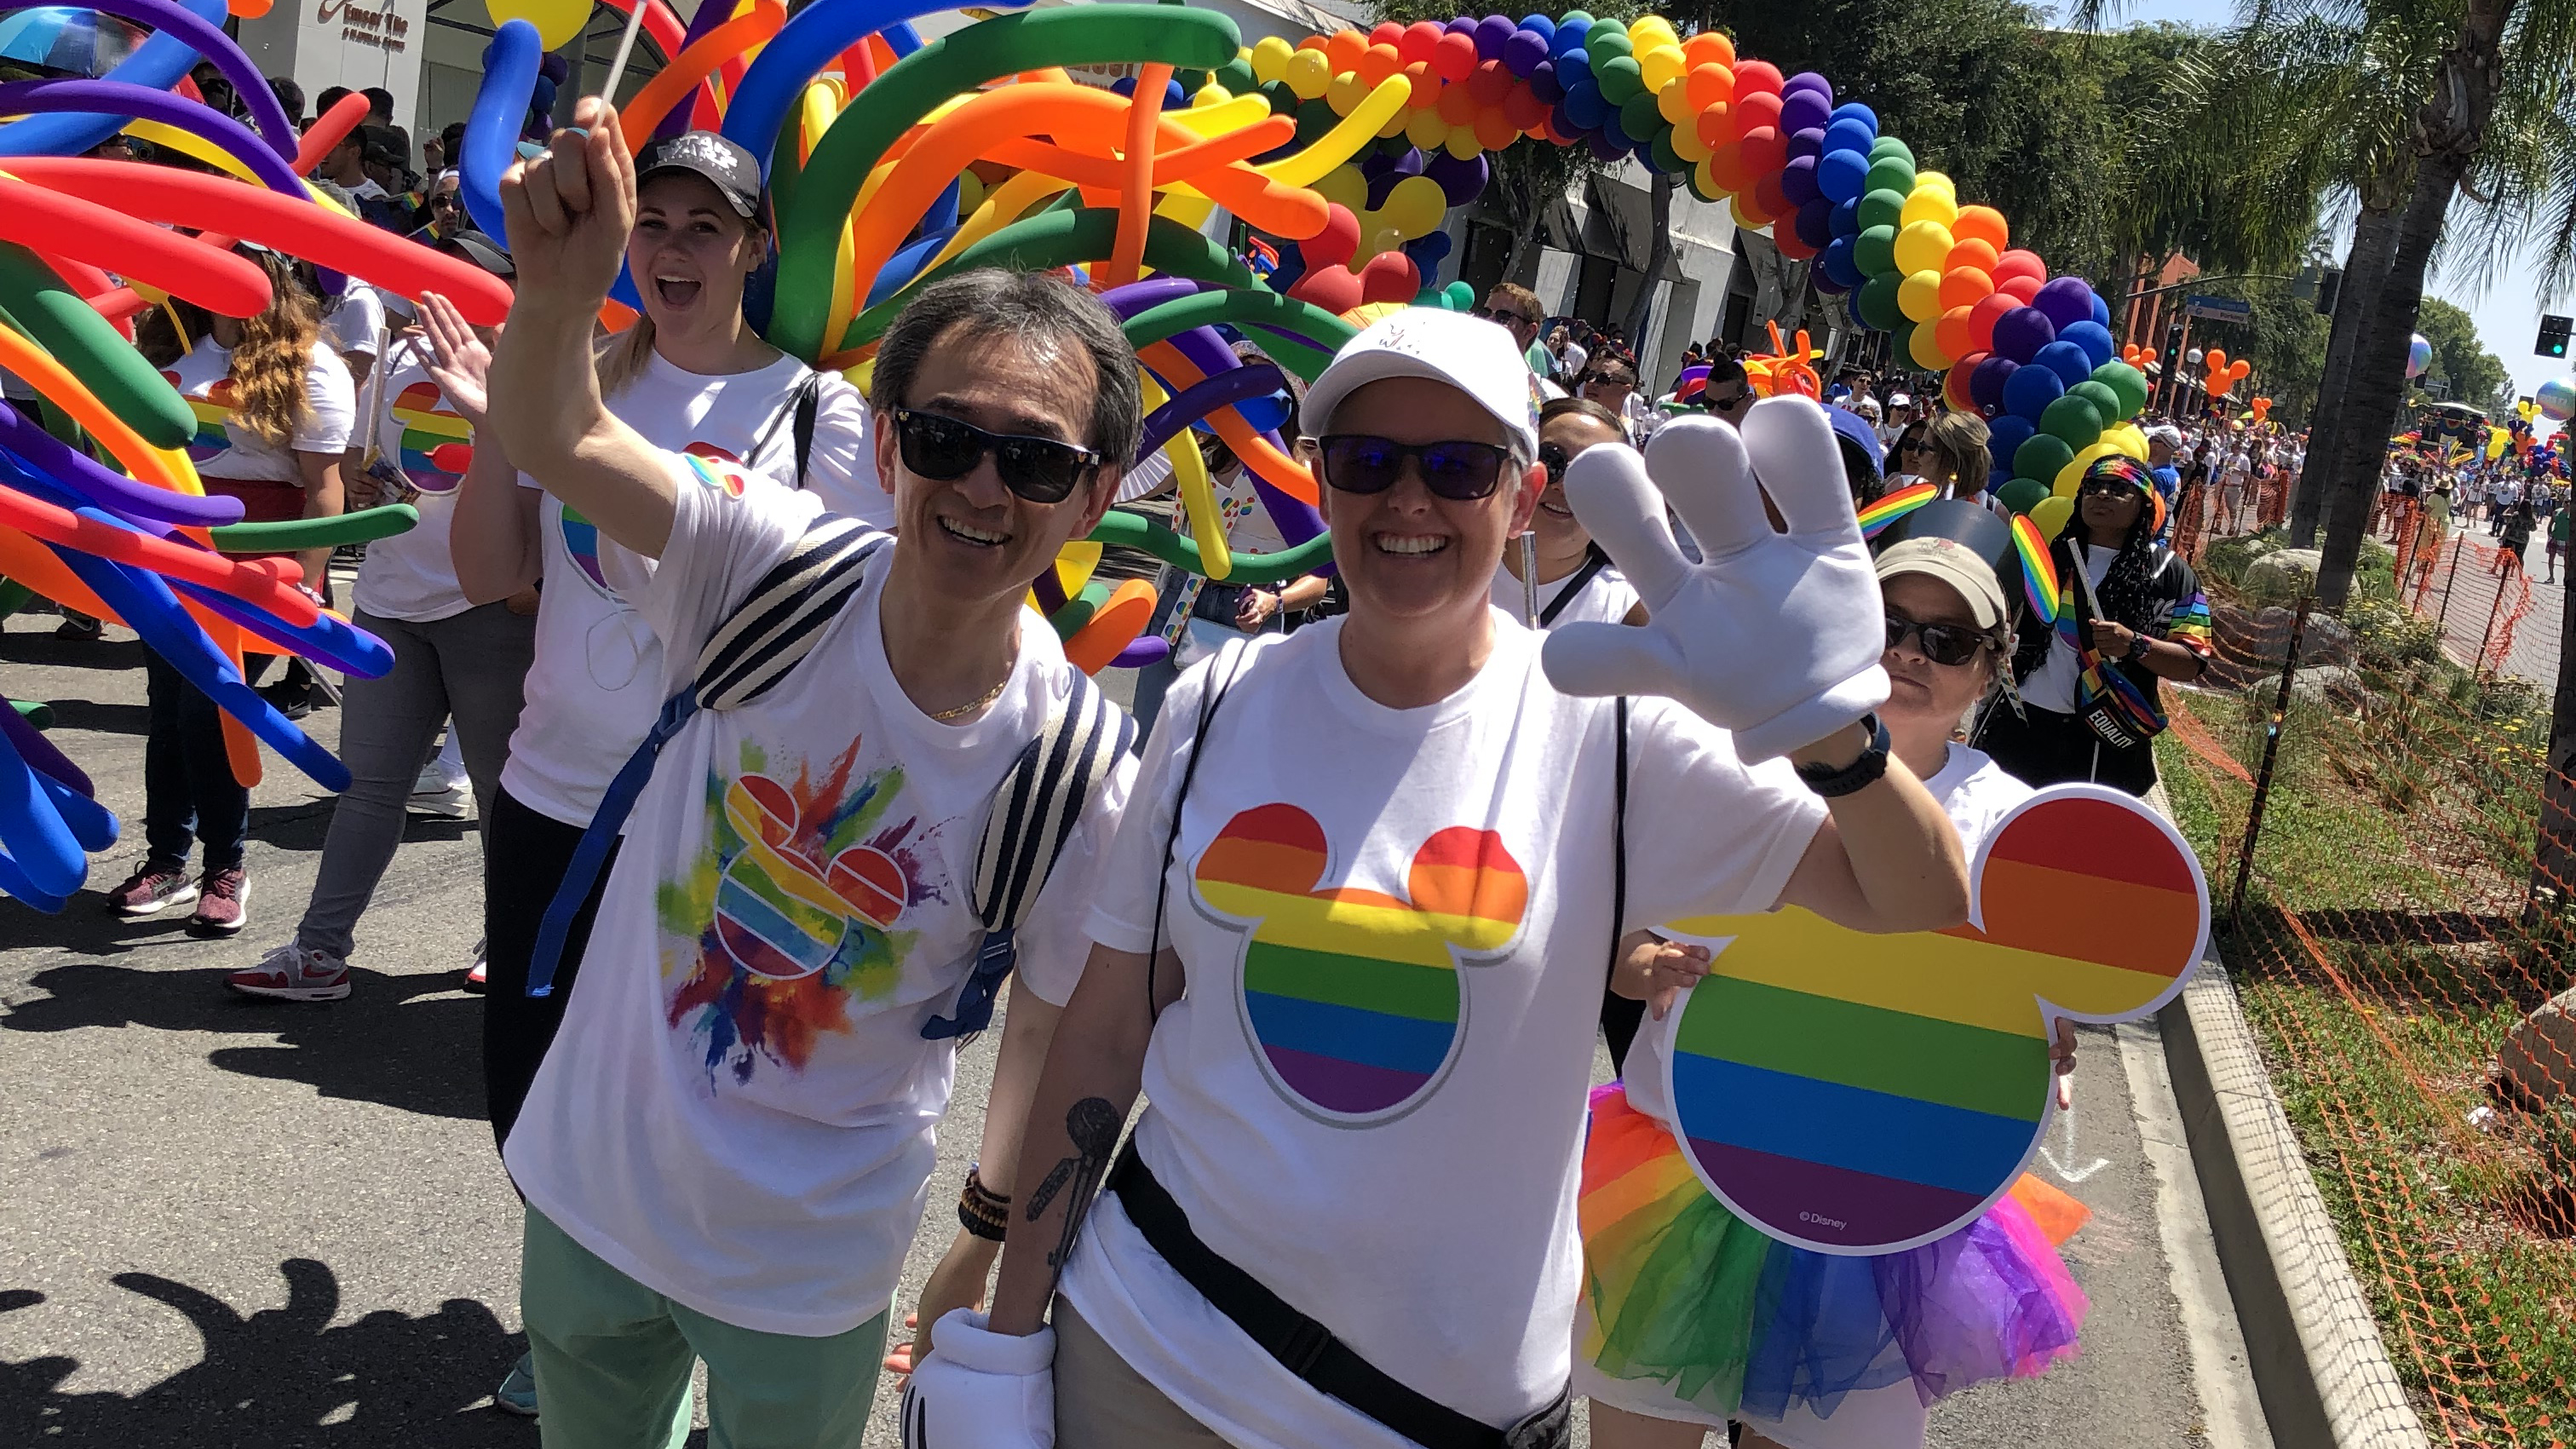 PHOTOS: Highlights from the 49th annual LA Pride Parade in